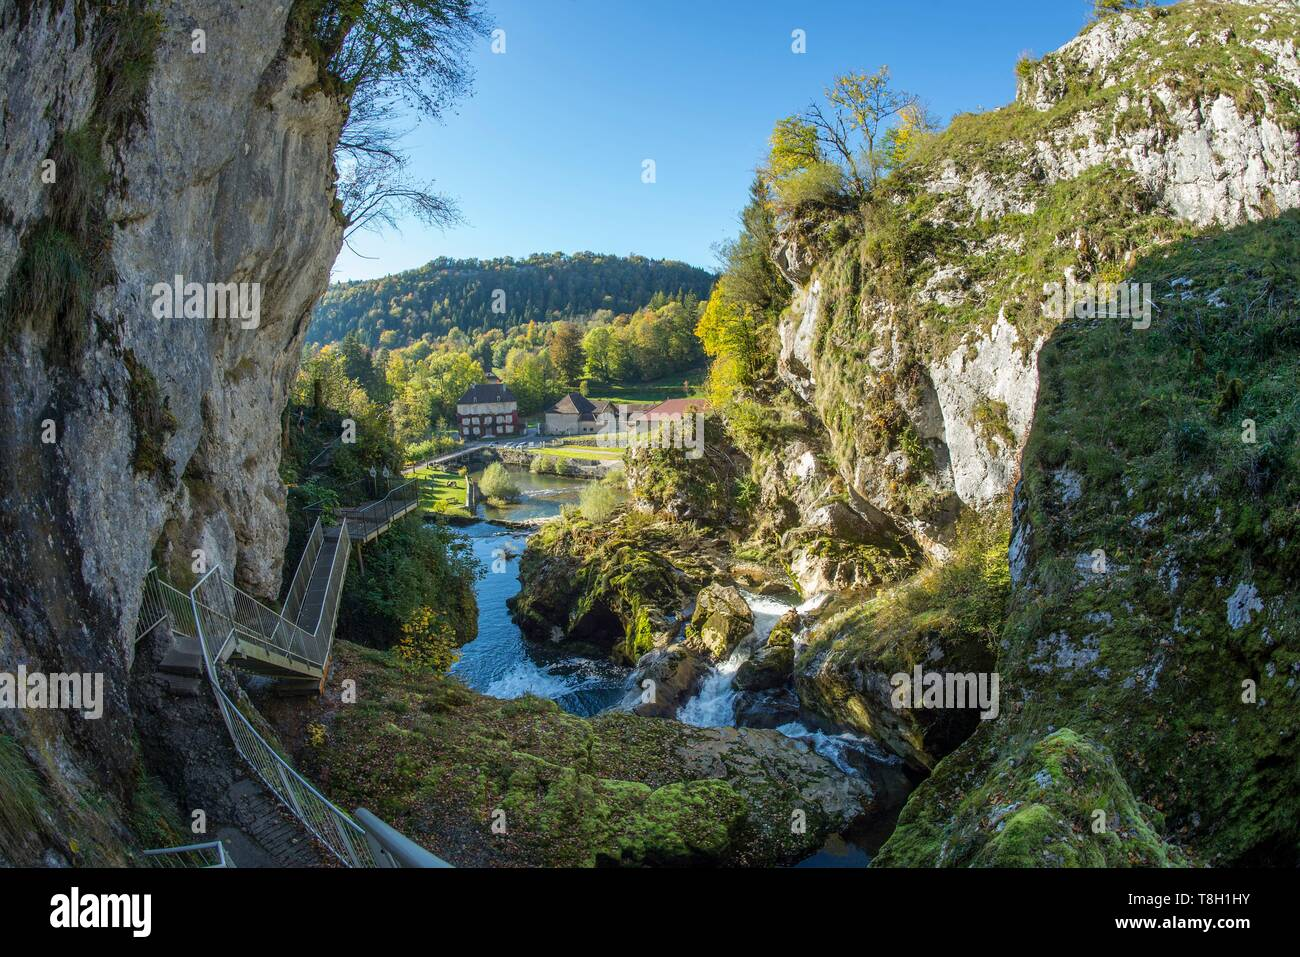 France, Jura, the losses of the river Ain with Village of Sirod - Stock Image